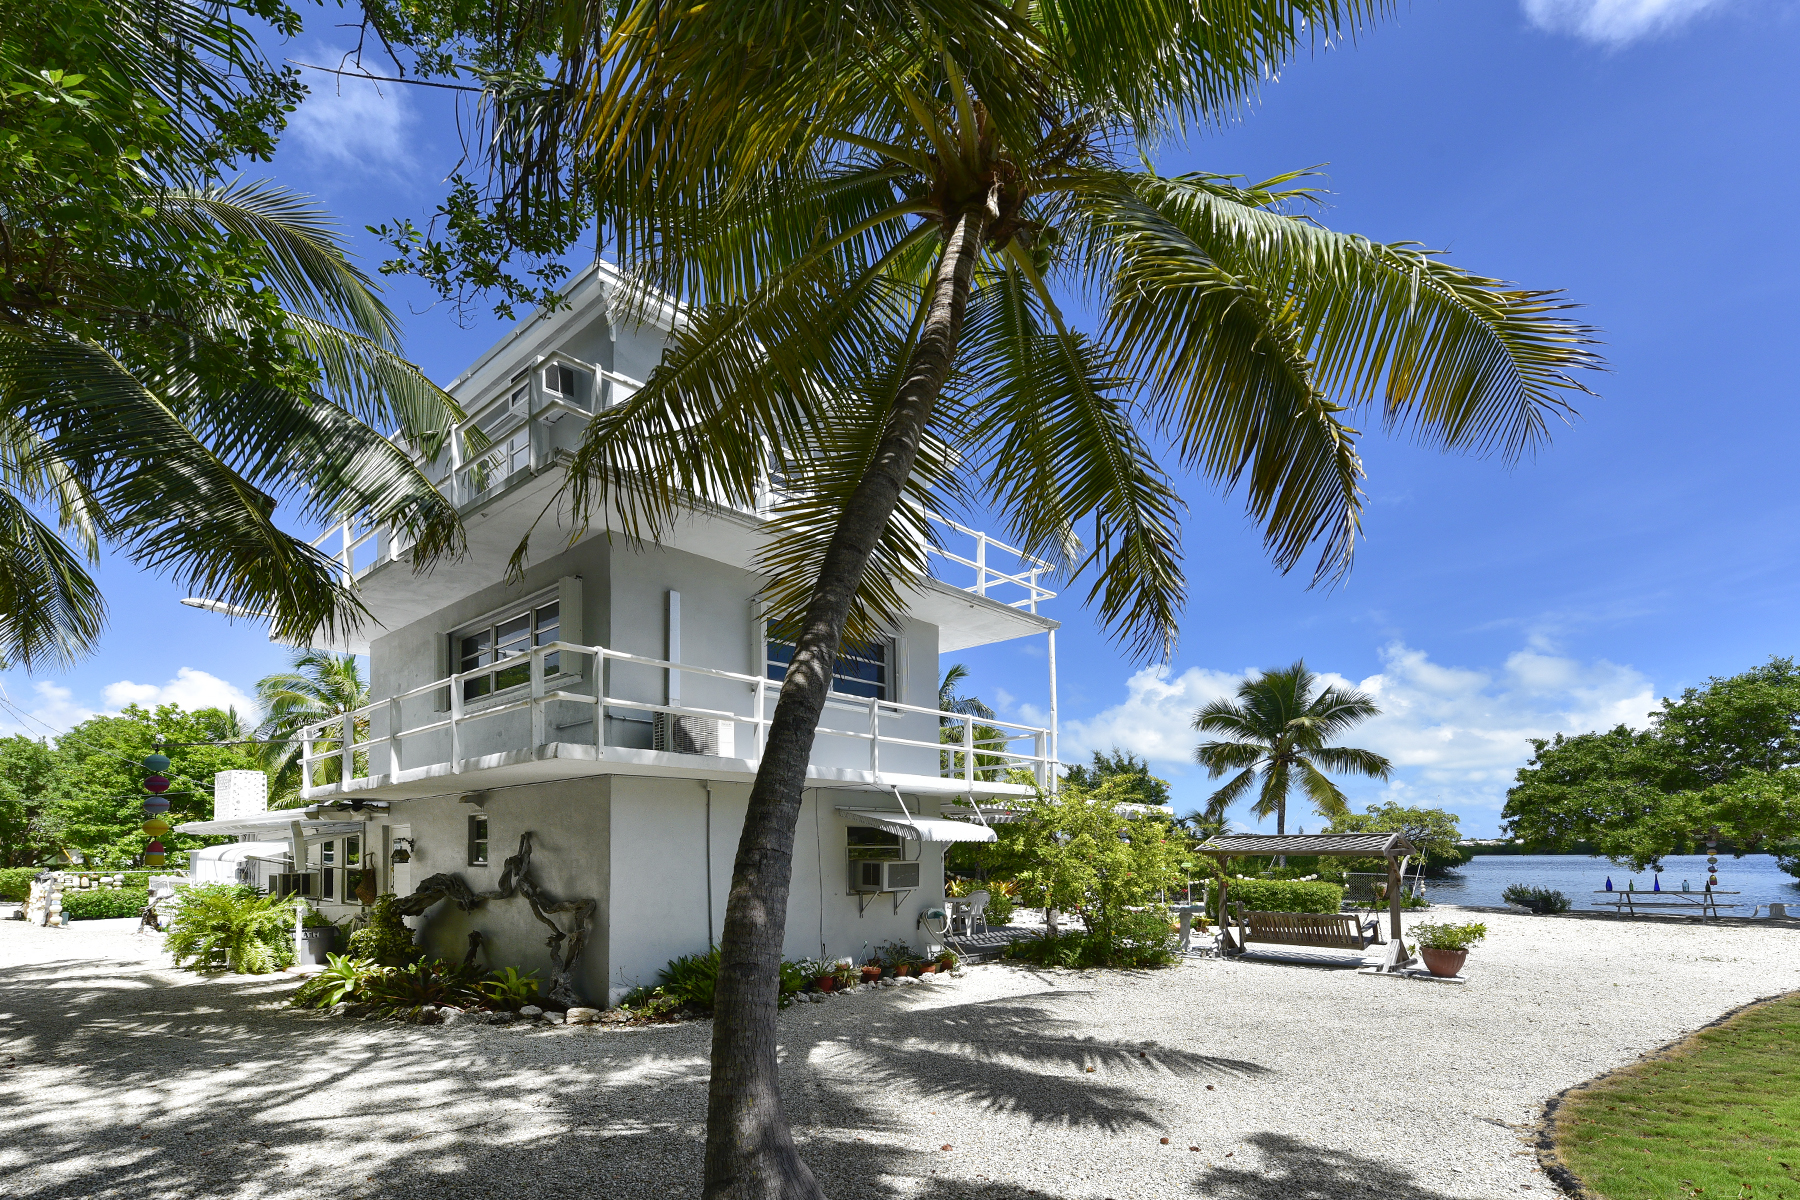 Single Family Home for Sale at Privacy & Serenity 98701 Overseas Highway, Key Largo, Florida, 33037 United States